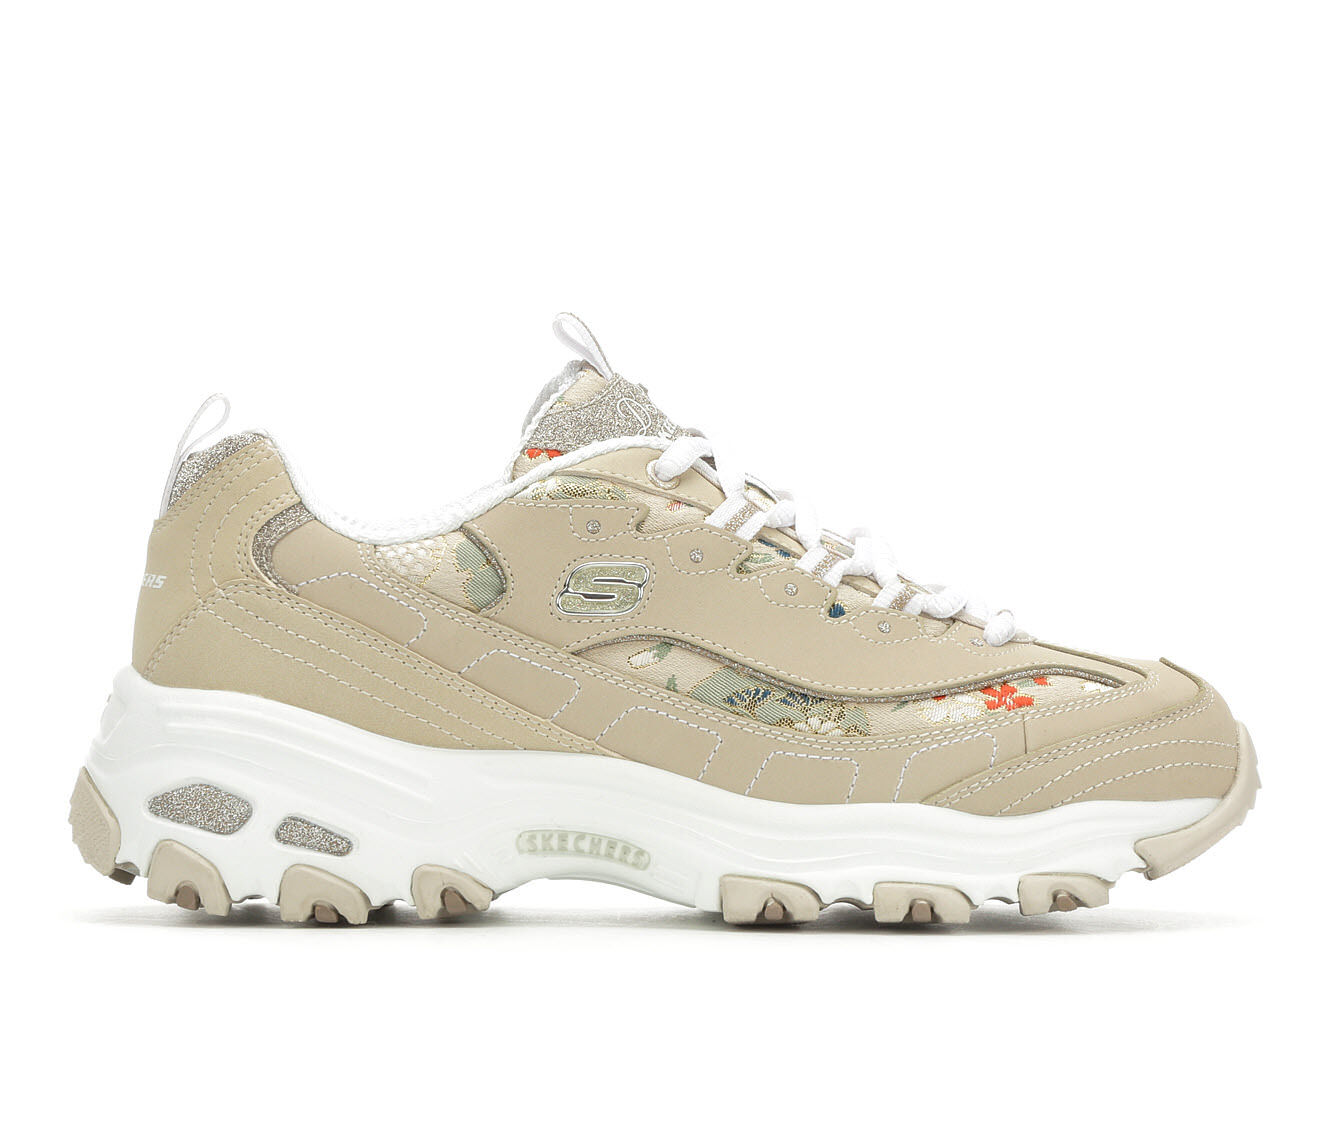 Women's Skechers D'Lites Floral Days 13082 Sneakers Taupe